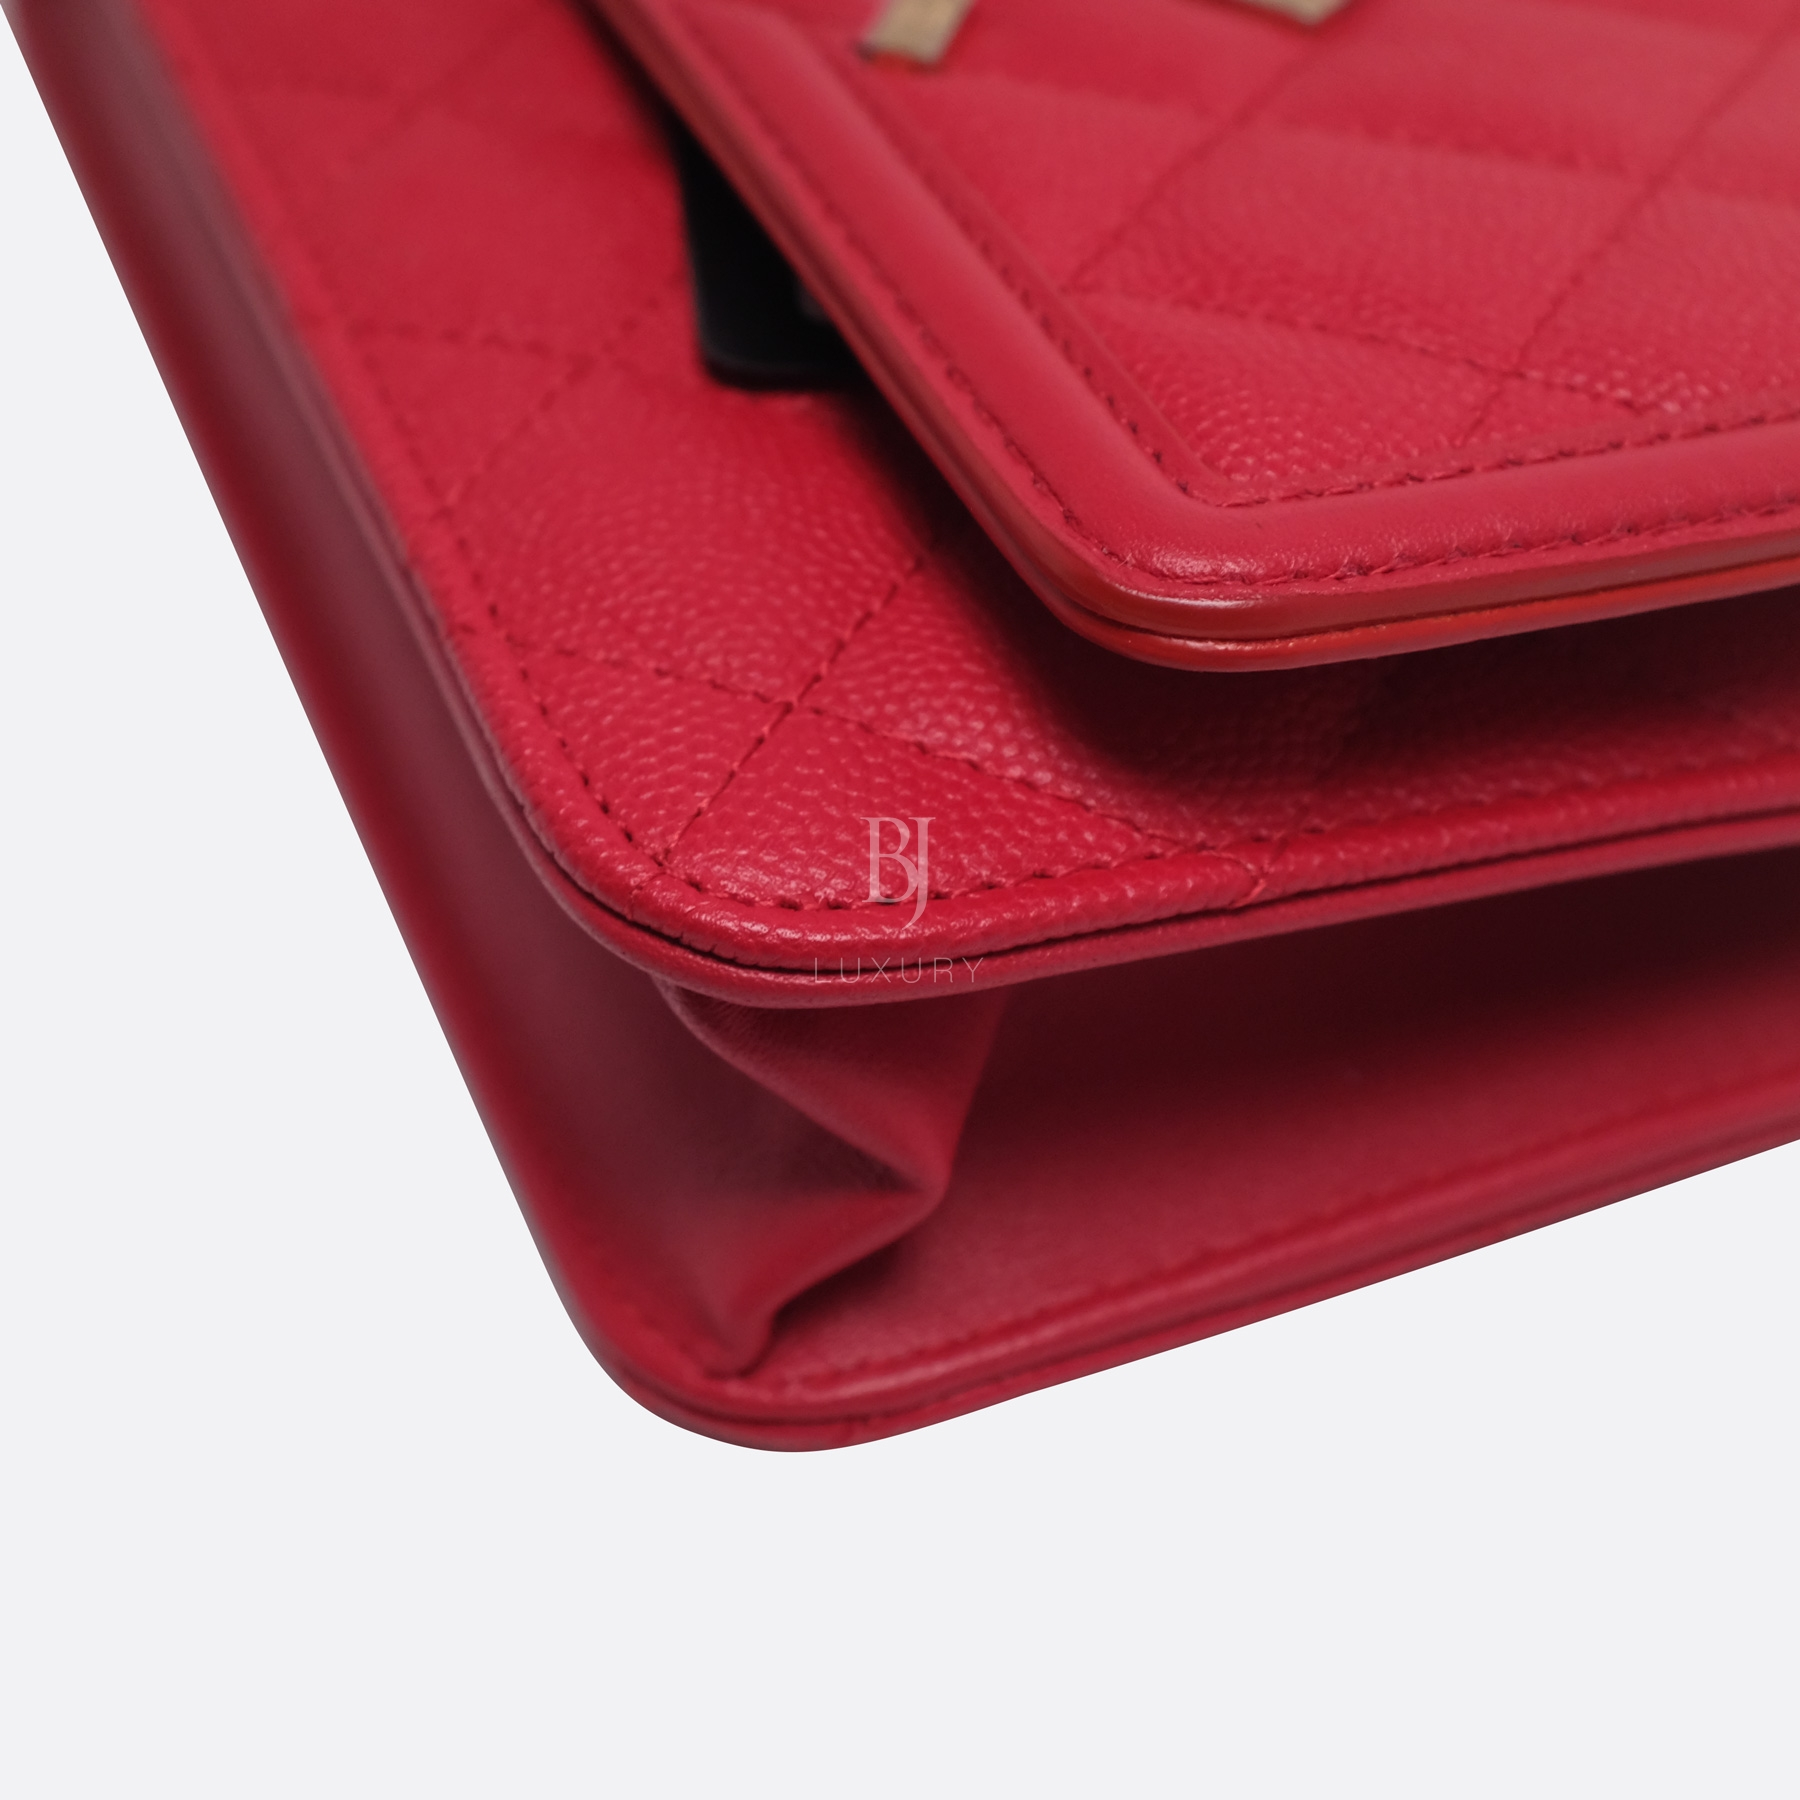 Chanel Wallet On Chain Red Caviar Brushed Gold BJ Luxury 8.jpg